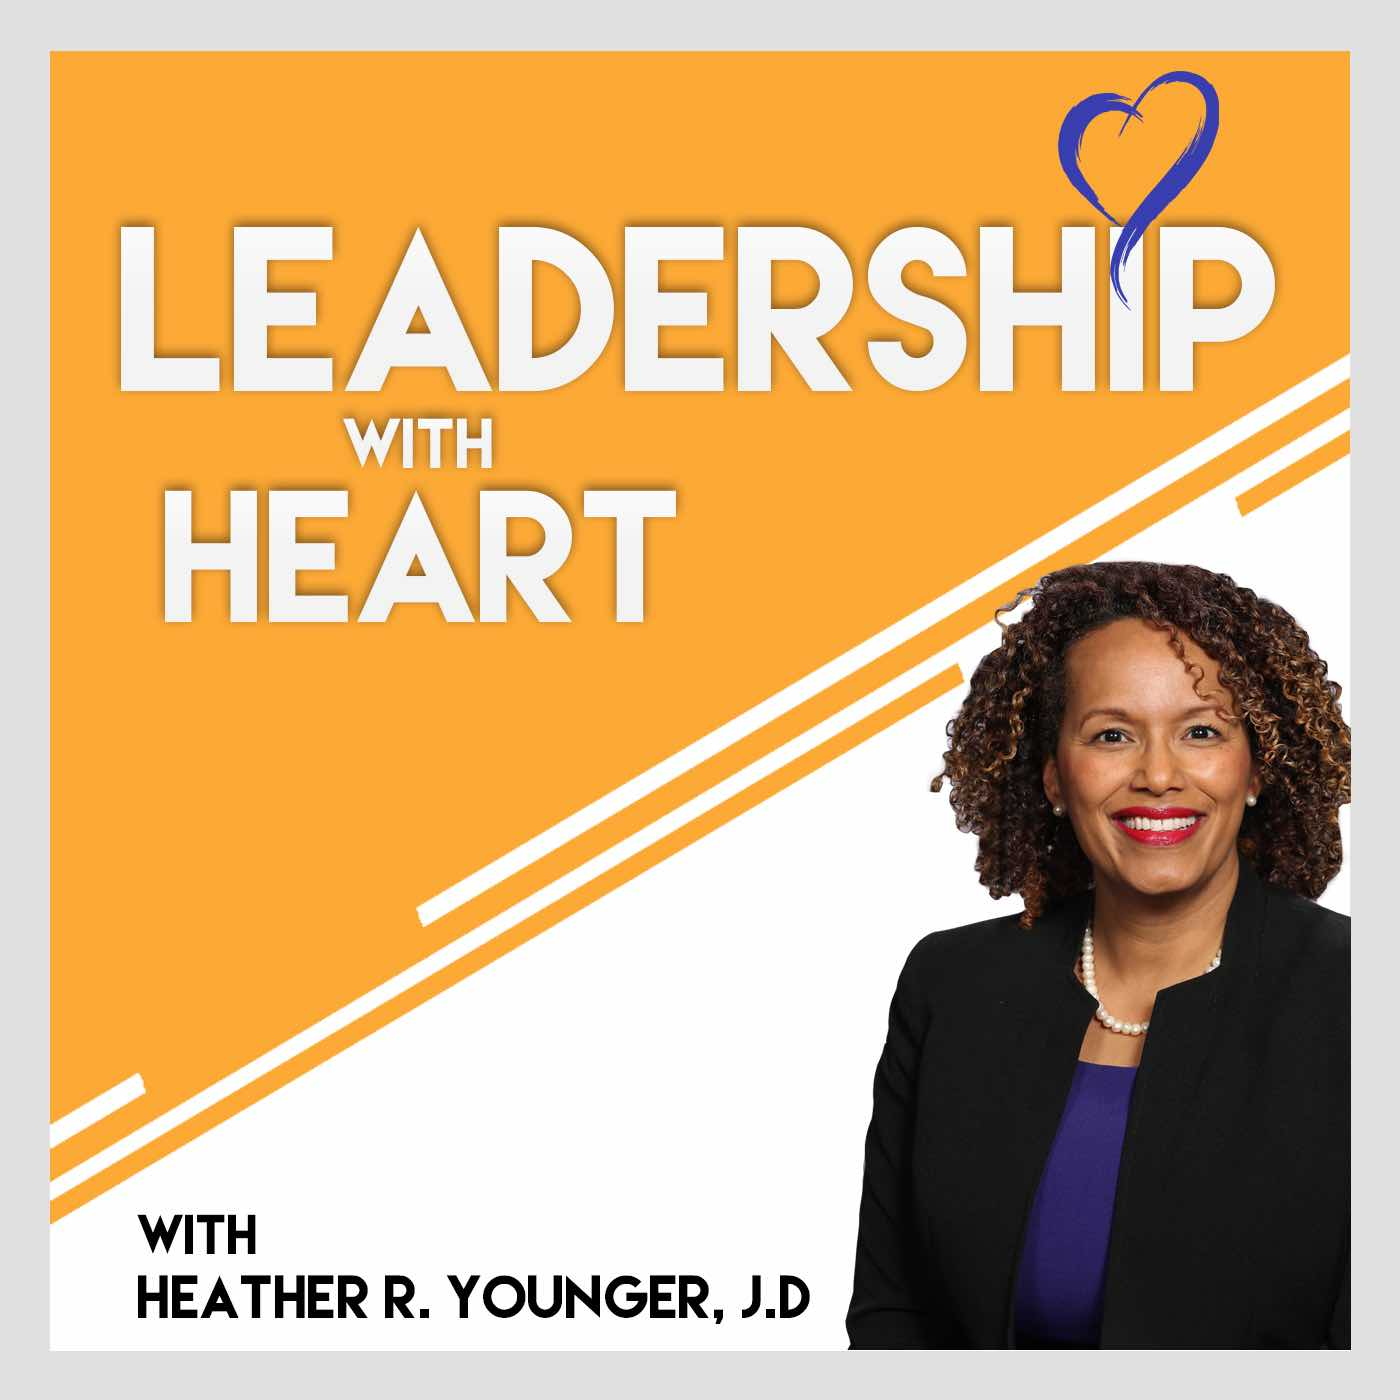 132: Leaders with Heart Listen to the Lessons of Imperfection